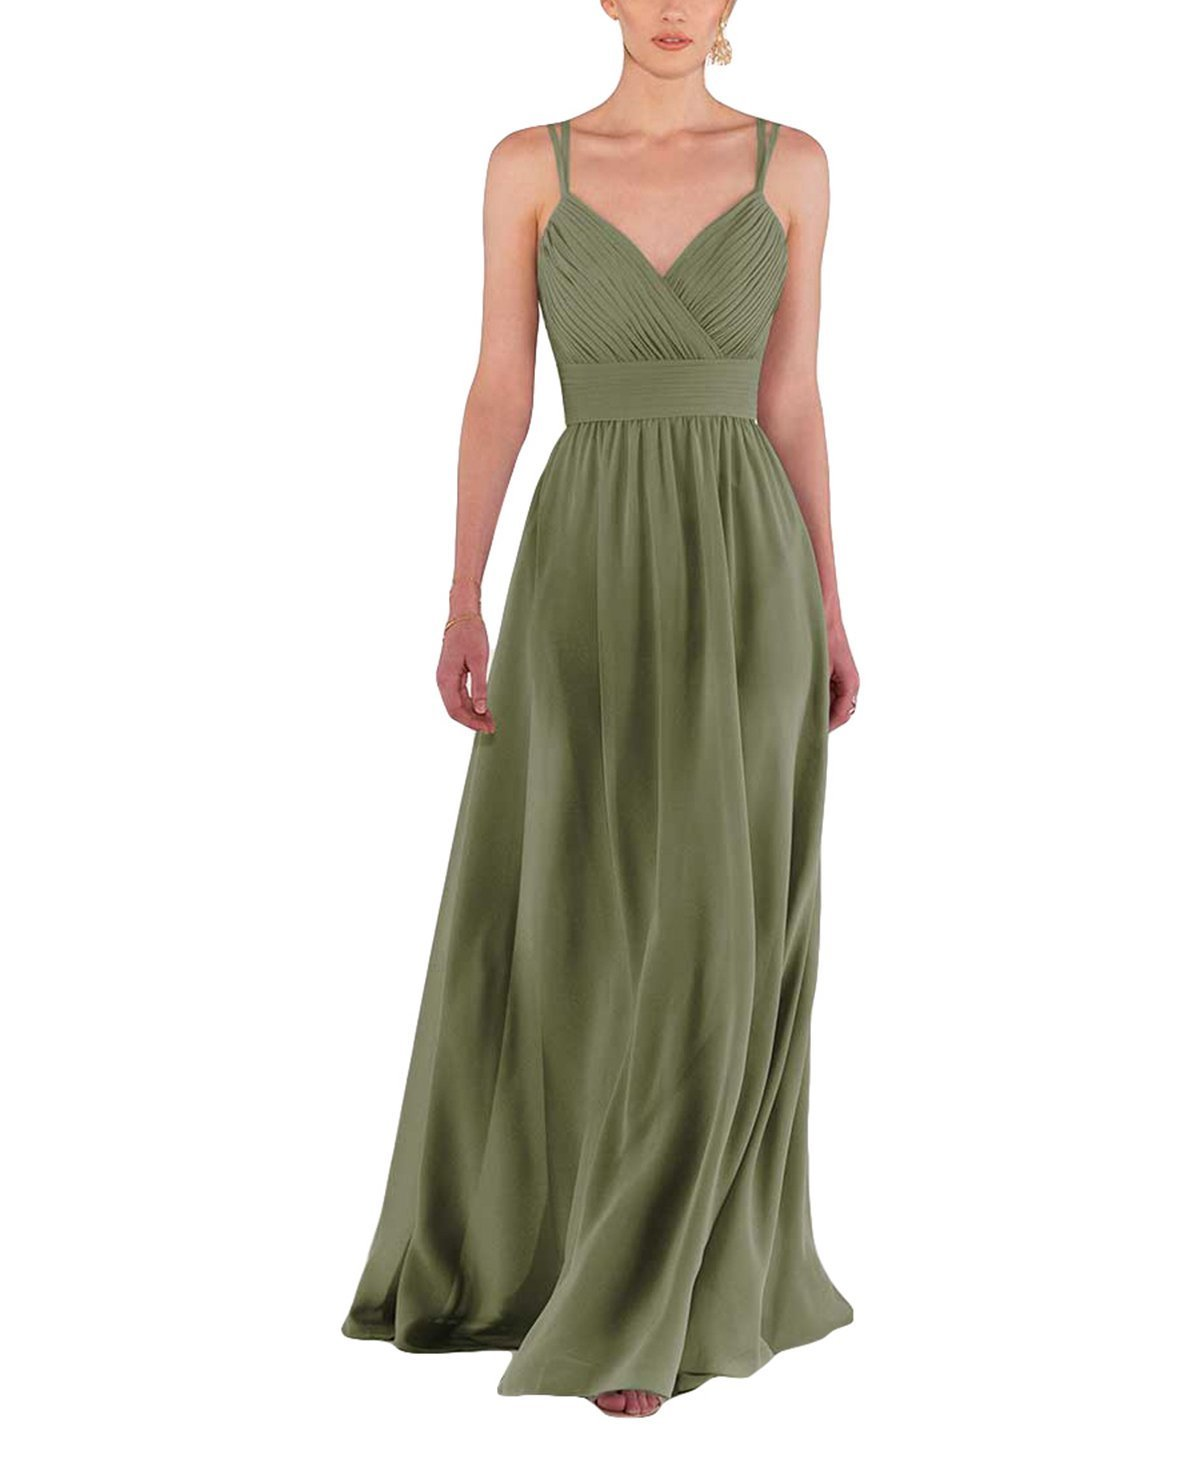 Sorella Vita Style 9030 in Evergreen